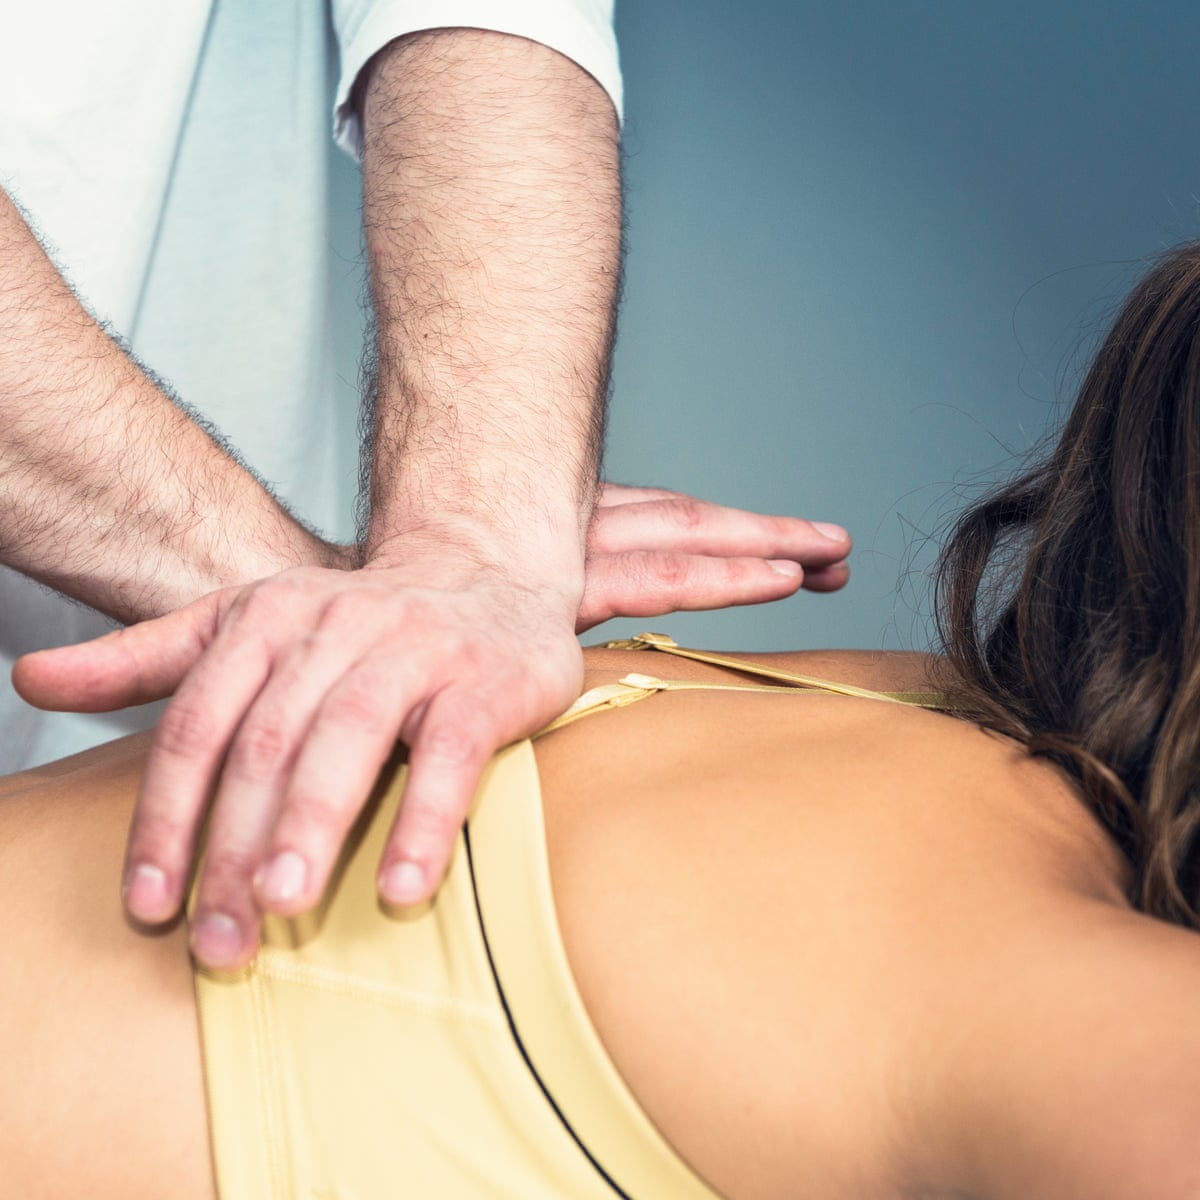 It's all about the cracking noise': the unlikely cult of the online  chiropractor | Back pain | The Guardian